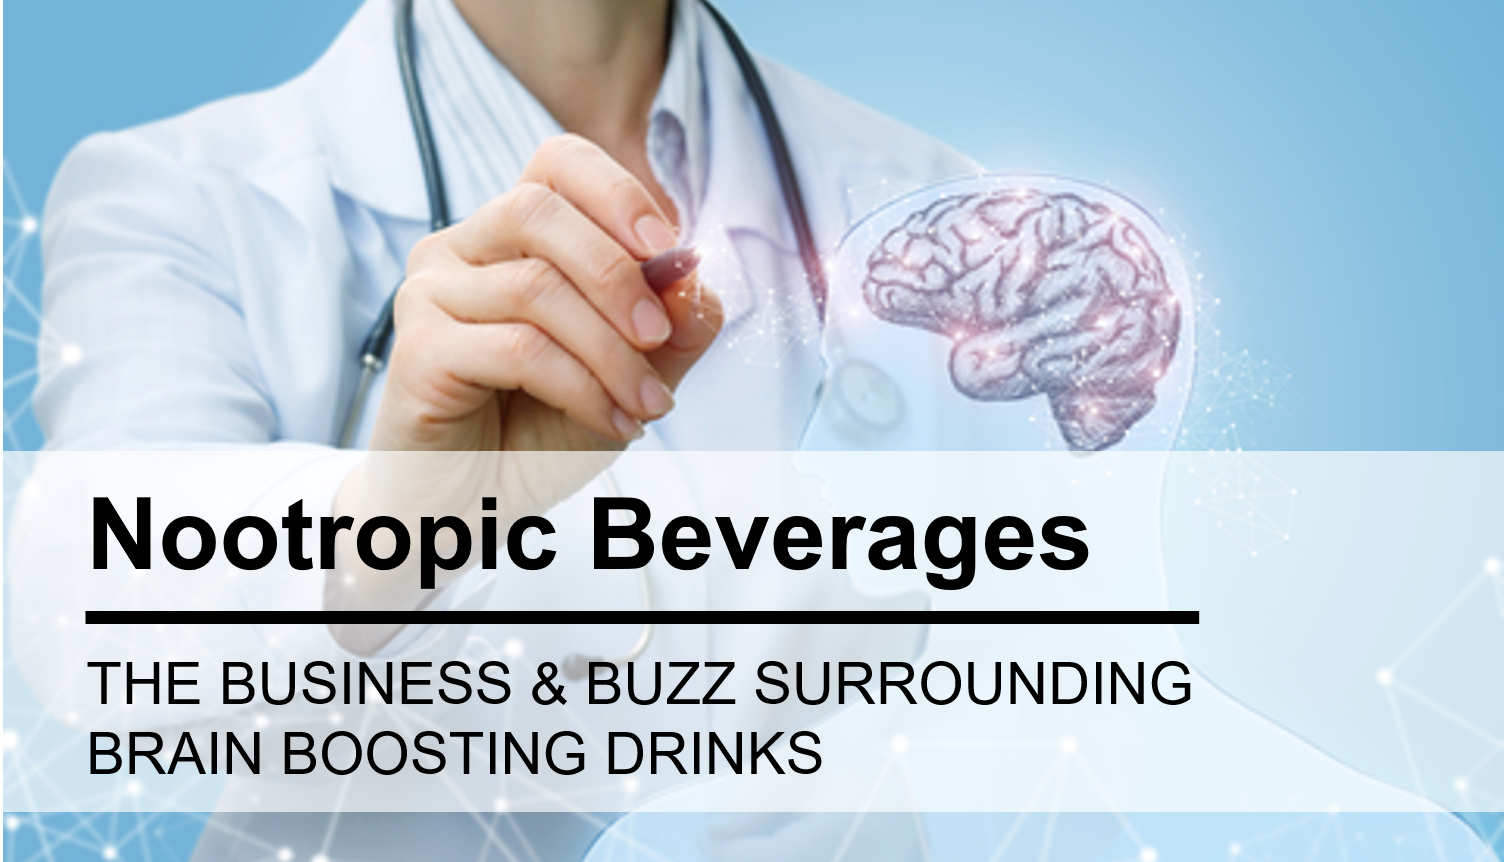 Can You Boost Your Brain With A Beverage